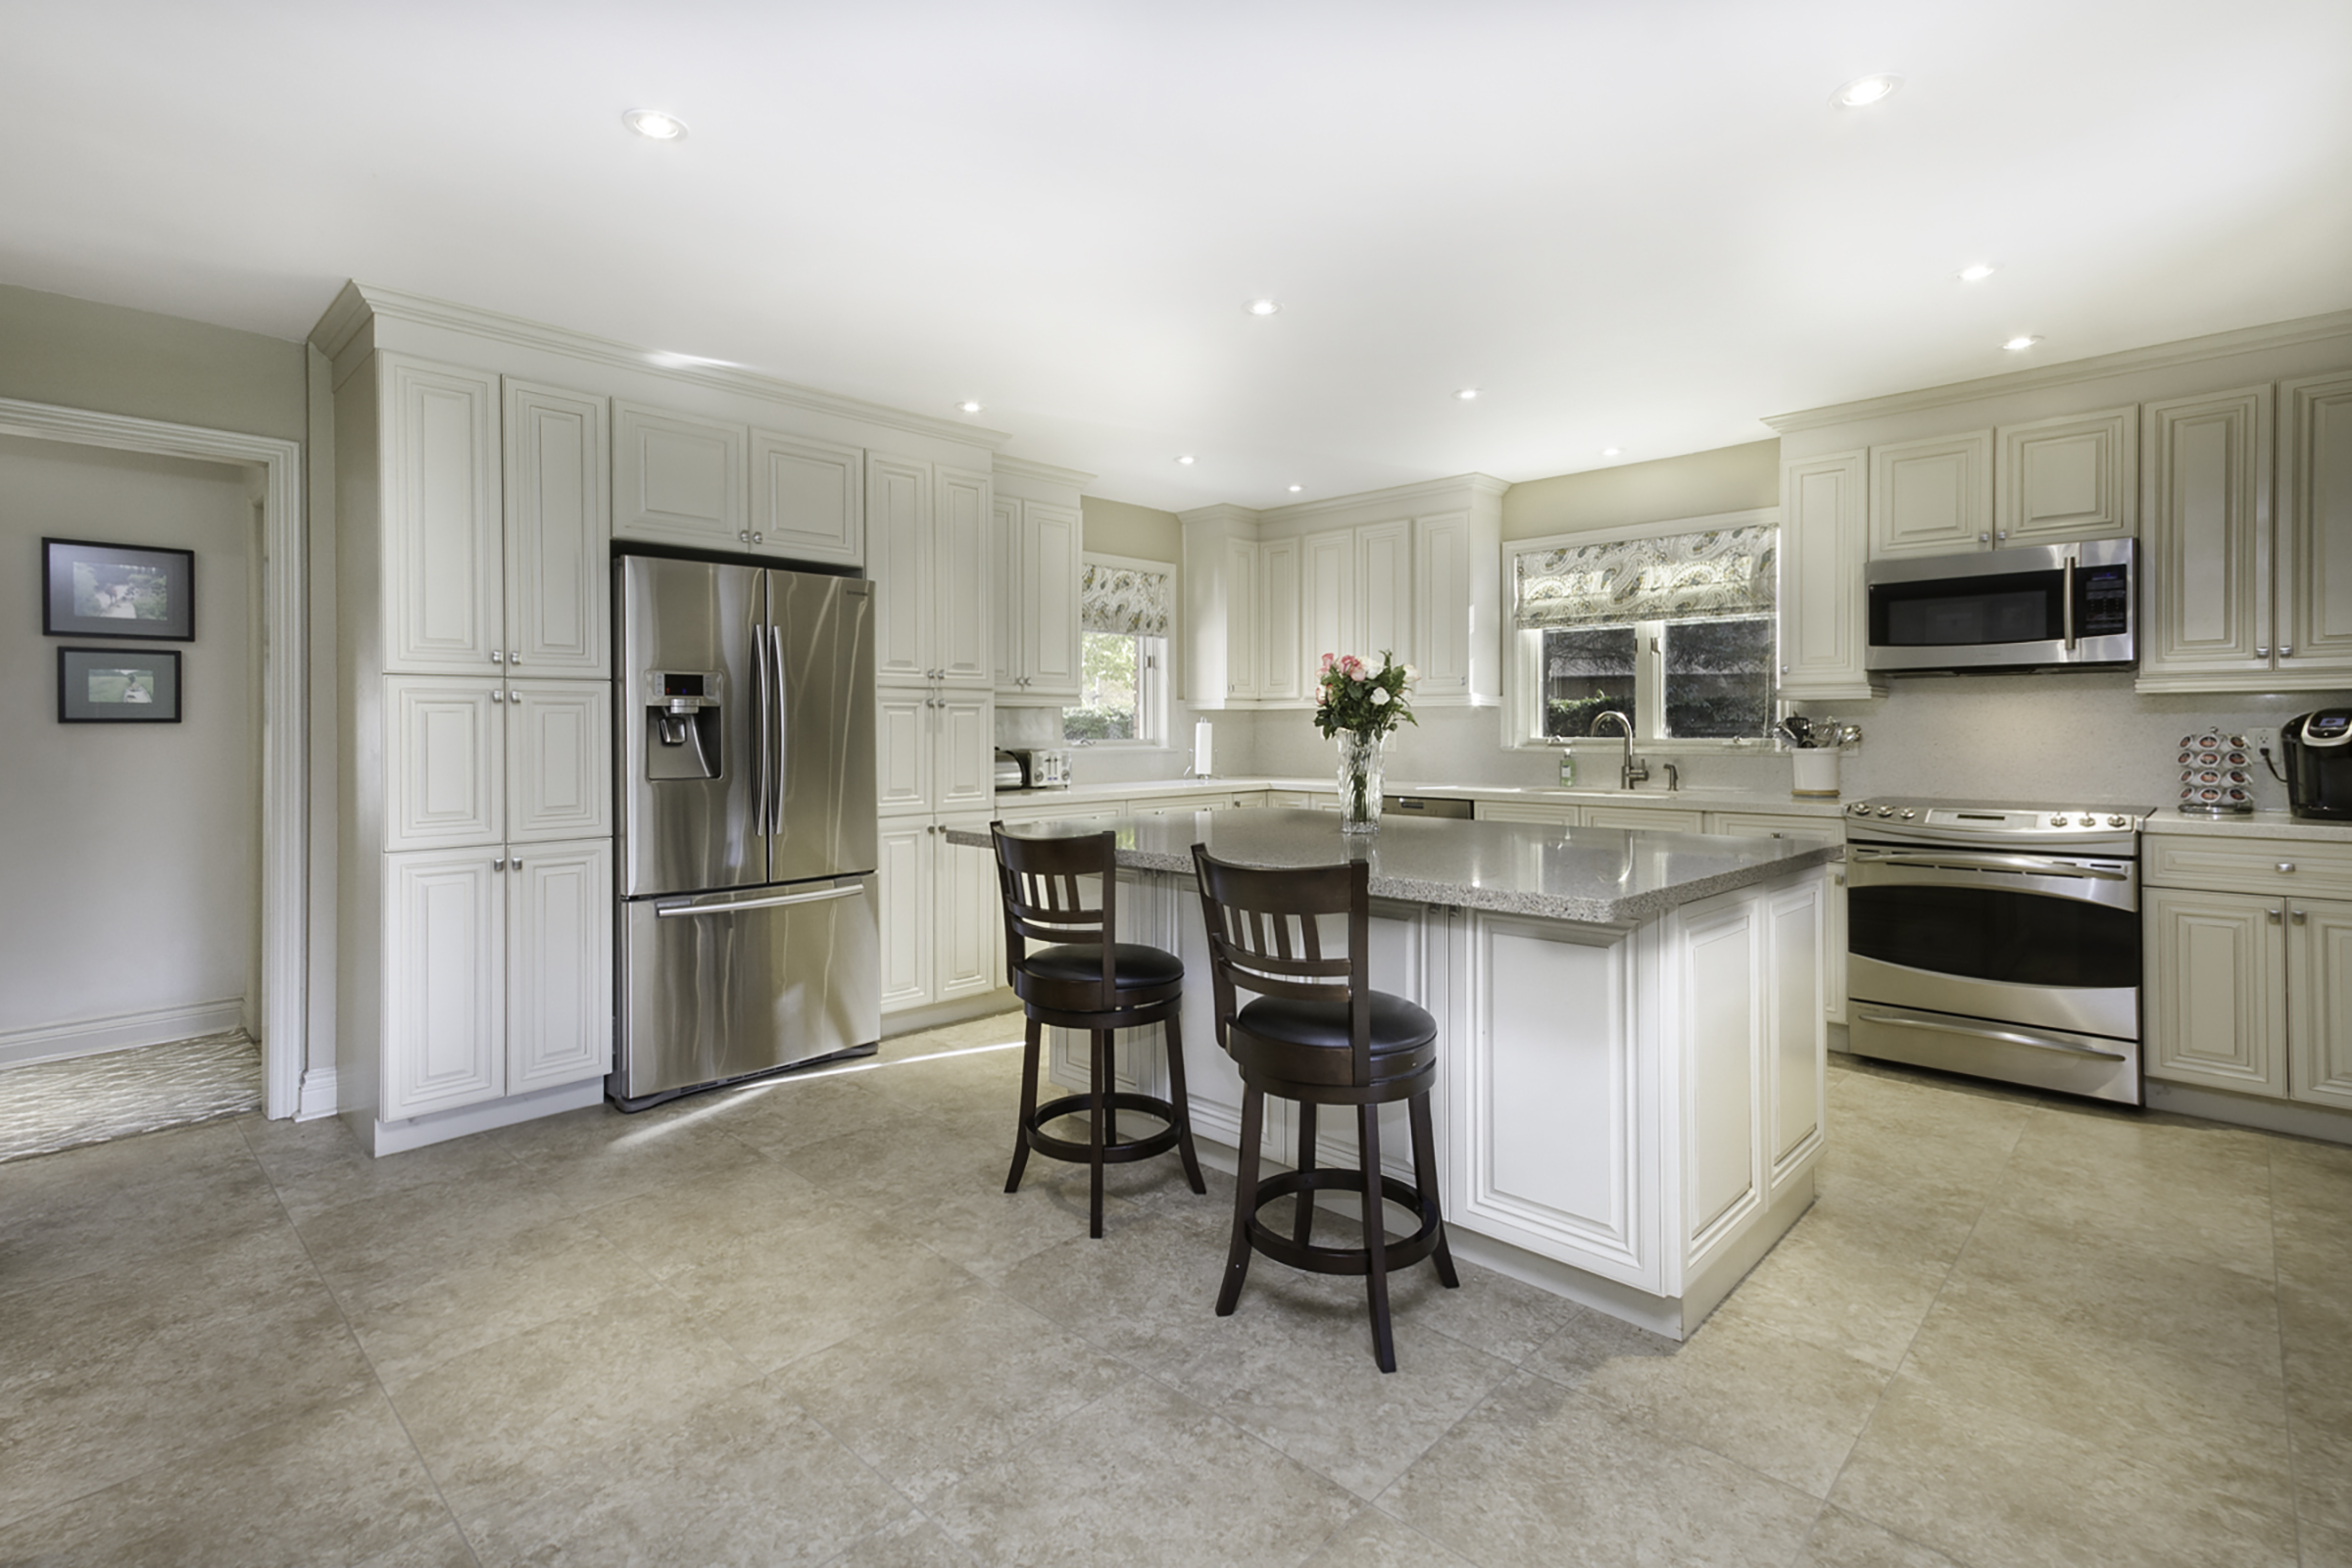 A large white kitchen with centre island